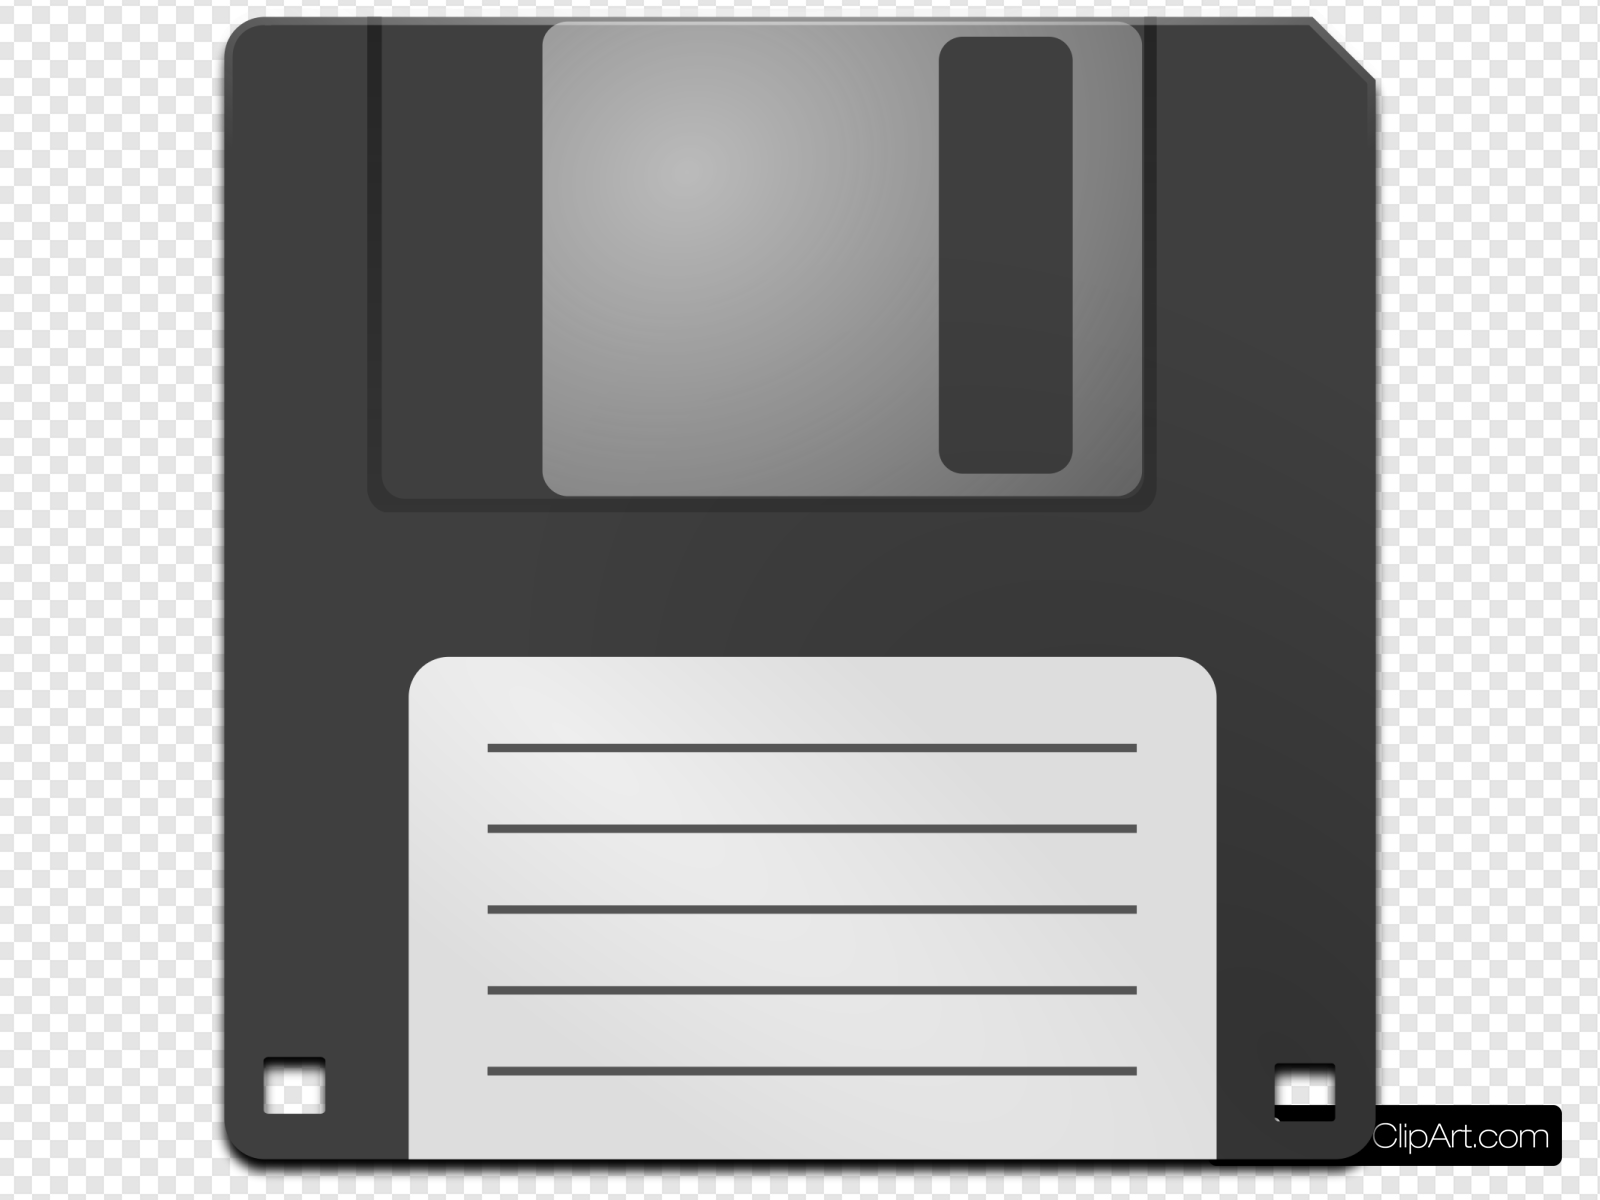 Diskette clipart png Media Floppy Disk Clip art, Icon and SVG - SVG Clipart png